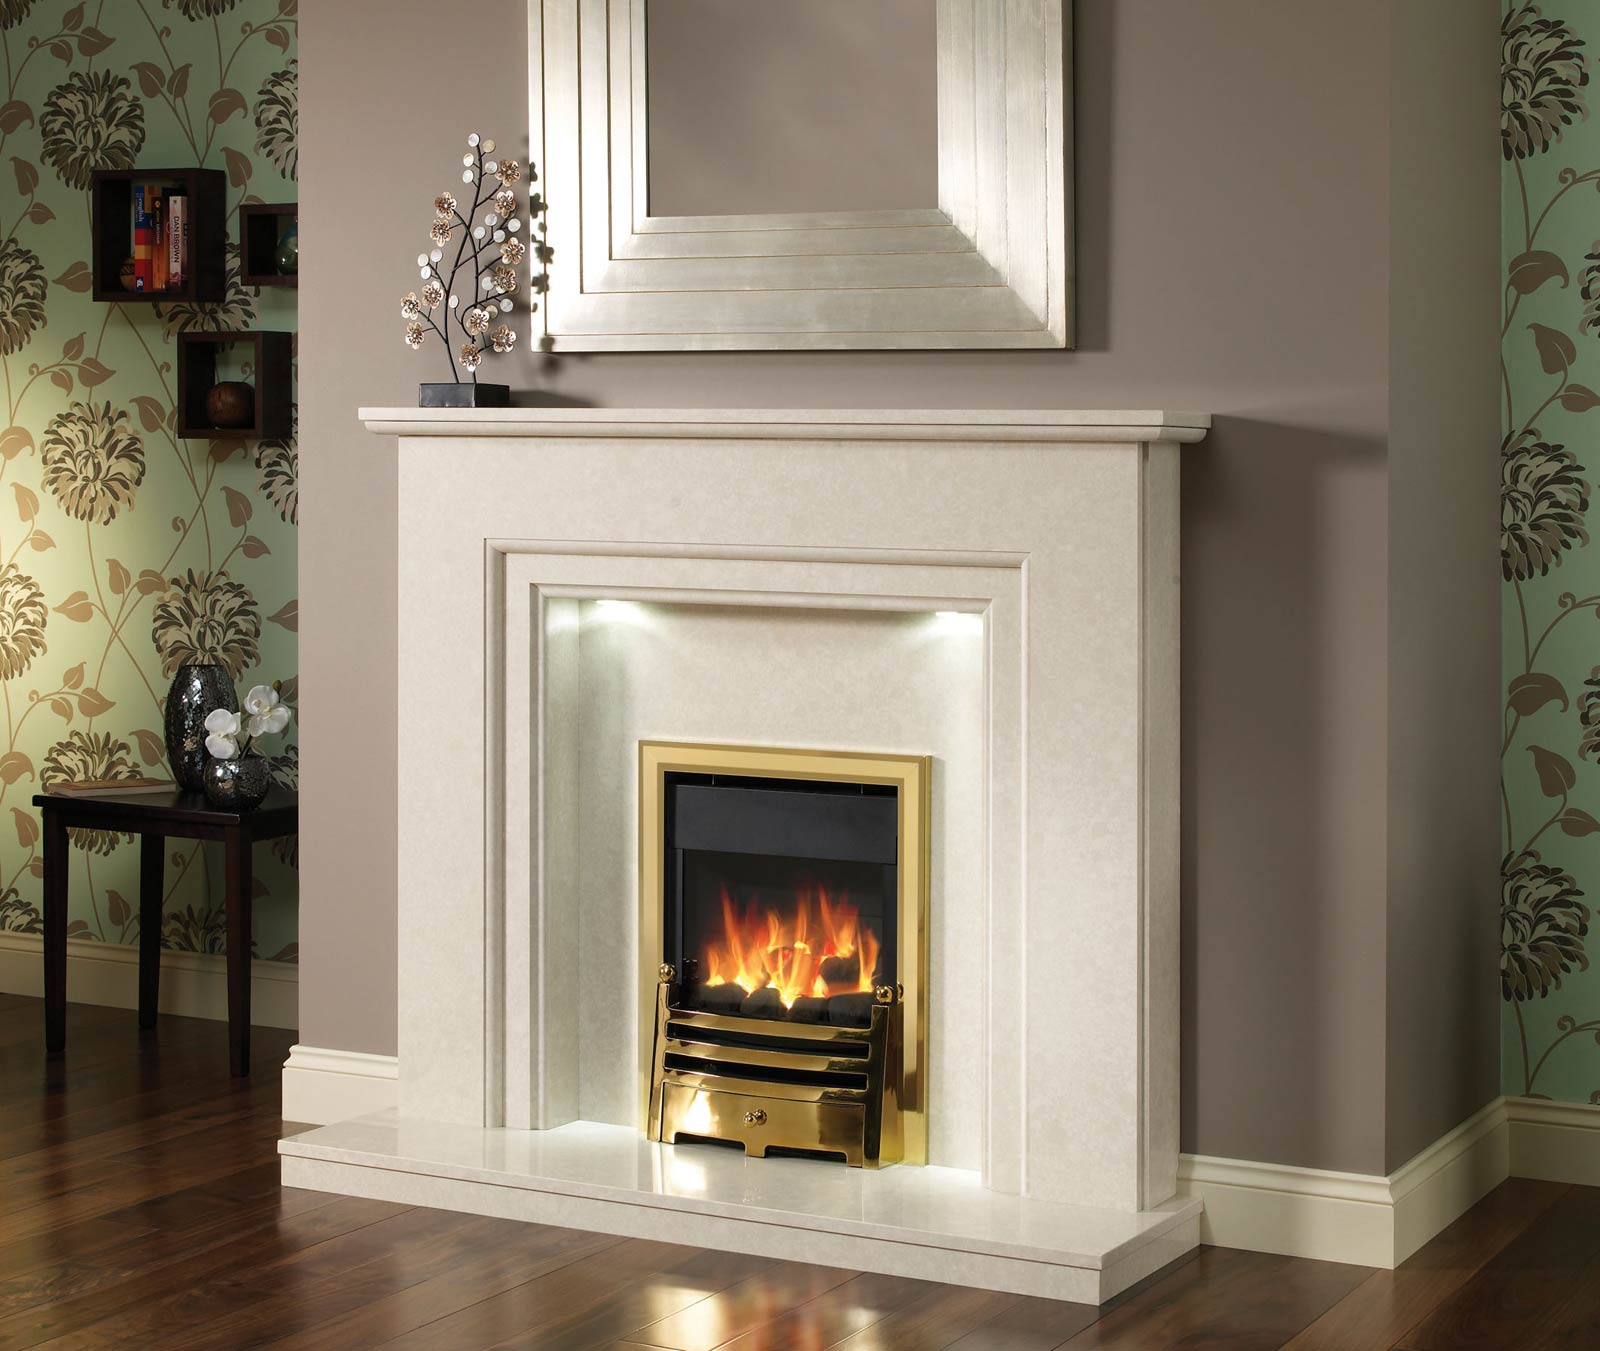 Types of white fireplace surround fireplace design ideas - Brick fireplace surrounds ideas ...